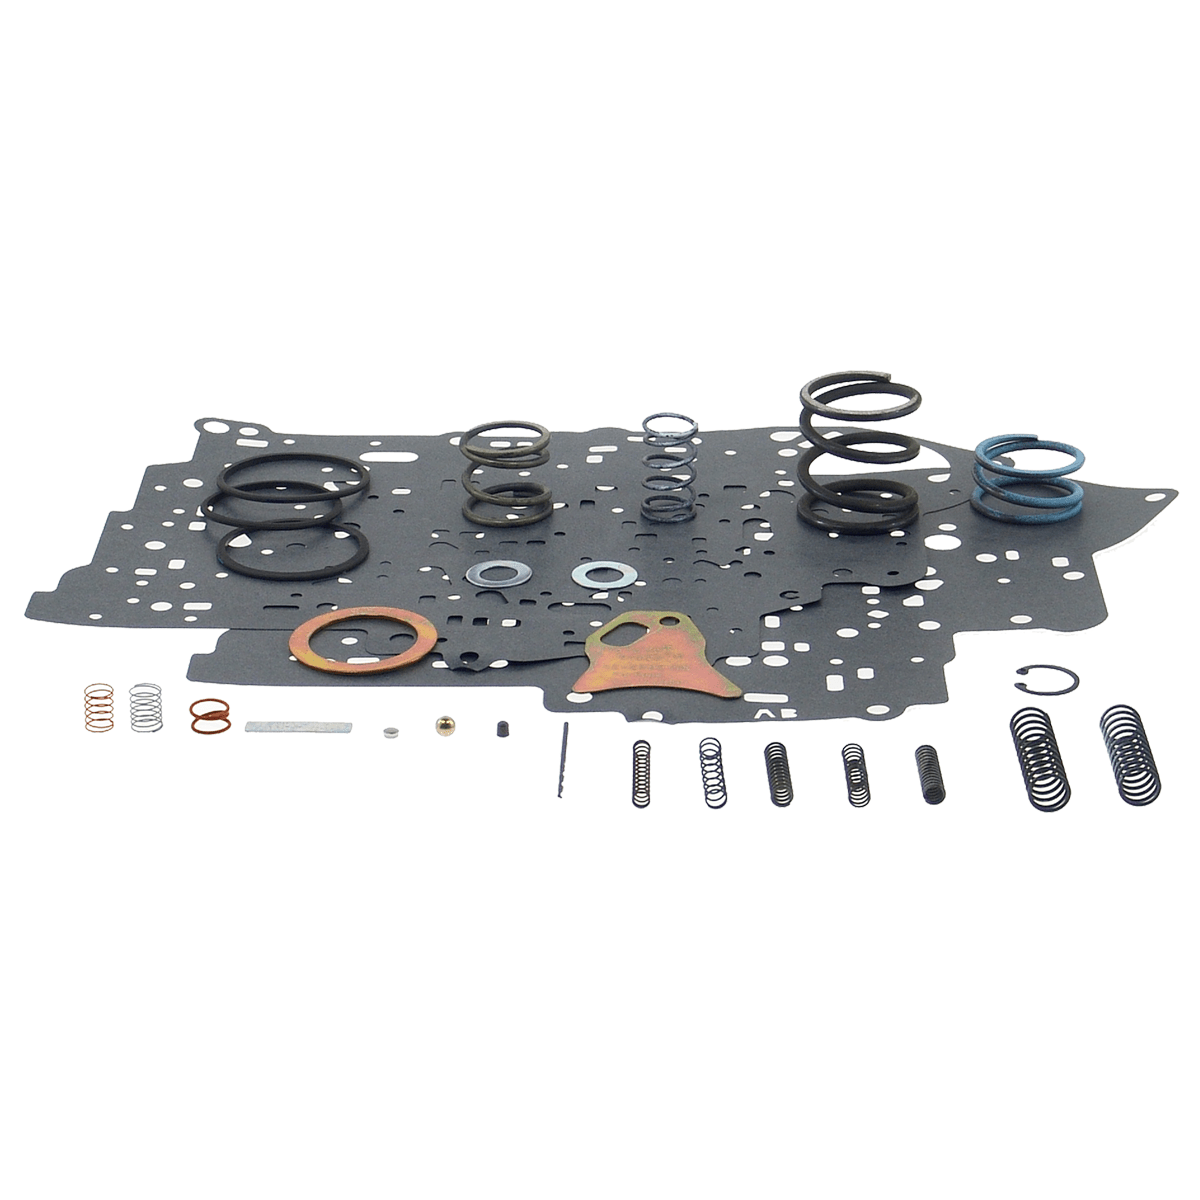 GM 2004R SHIFT KIT® Valve Body Repair Kit